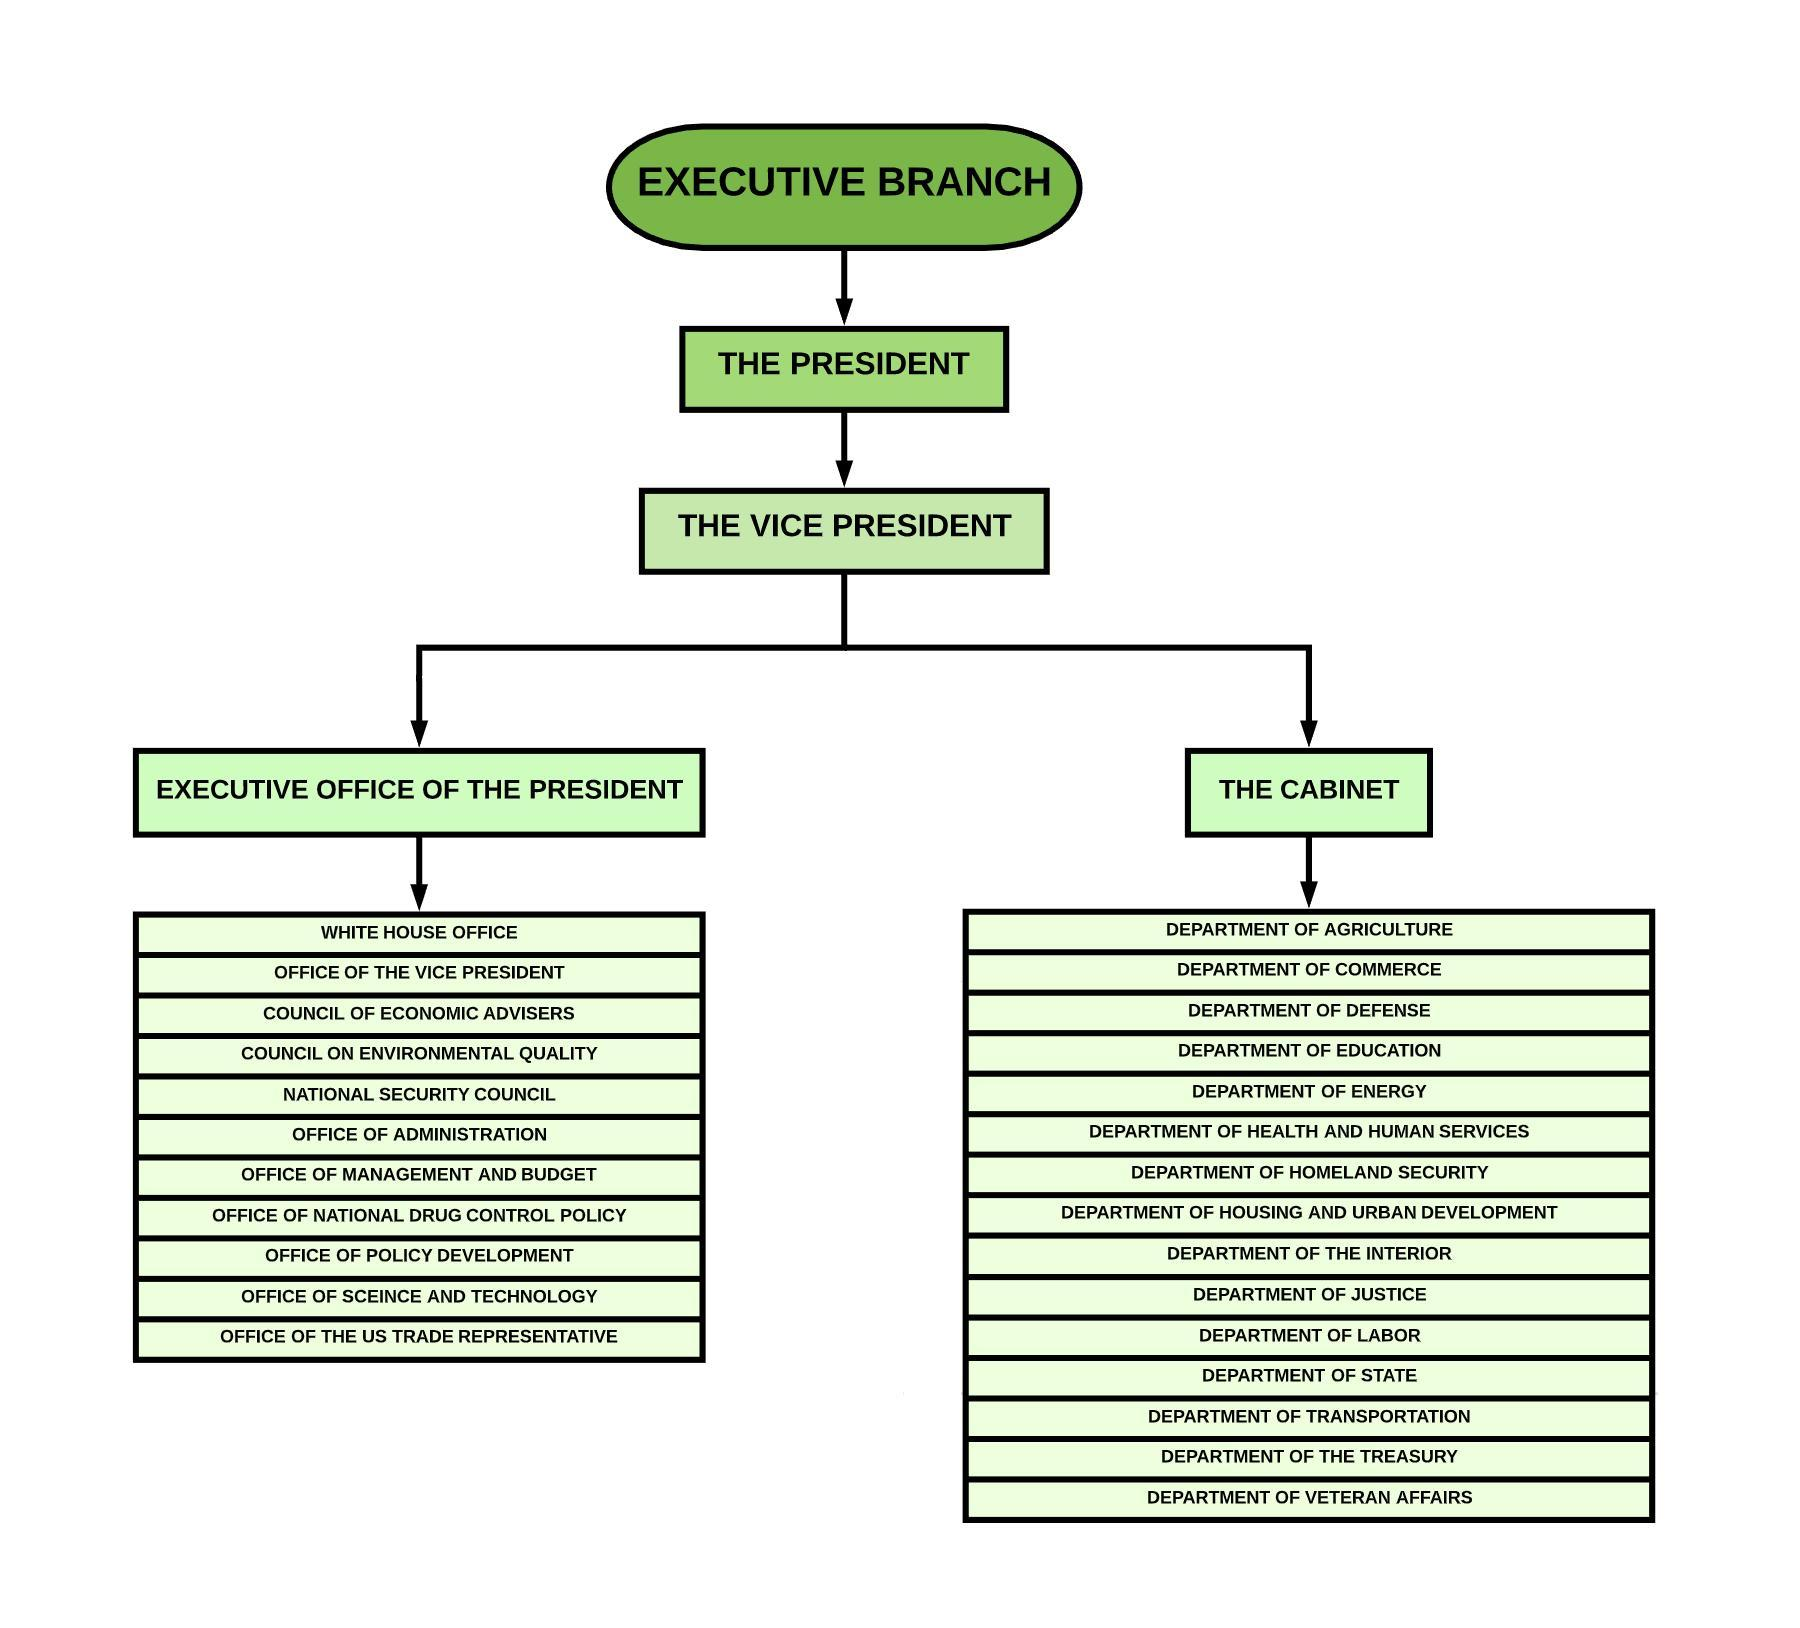 Each Branch Of Government Has A Clear Hierarchy For Its